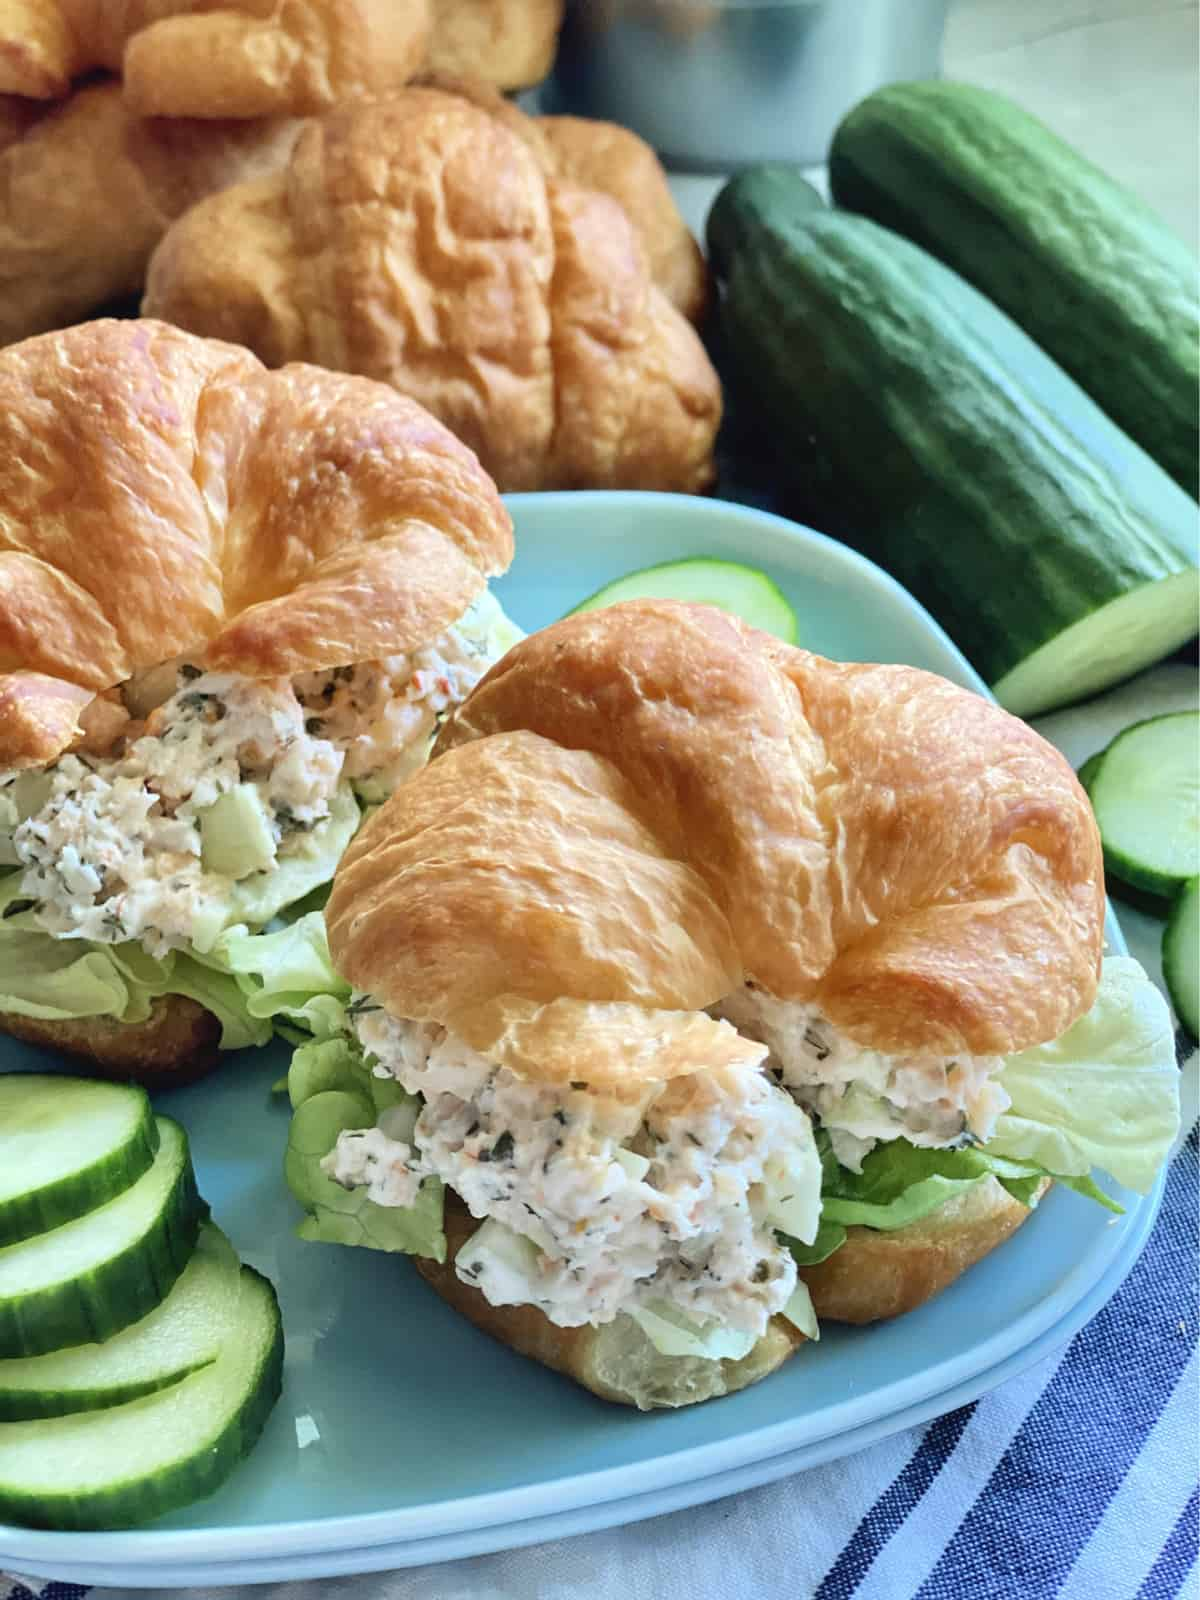 Close up of two croissants filled with seafood salad and lettuce with cucumbers on the side.